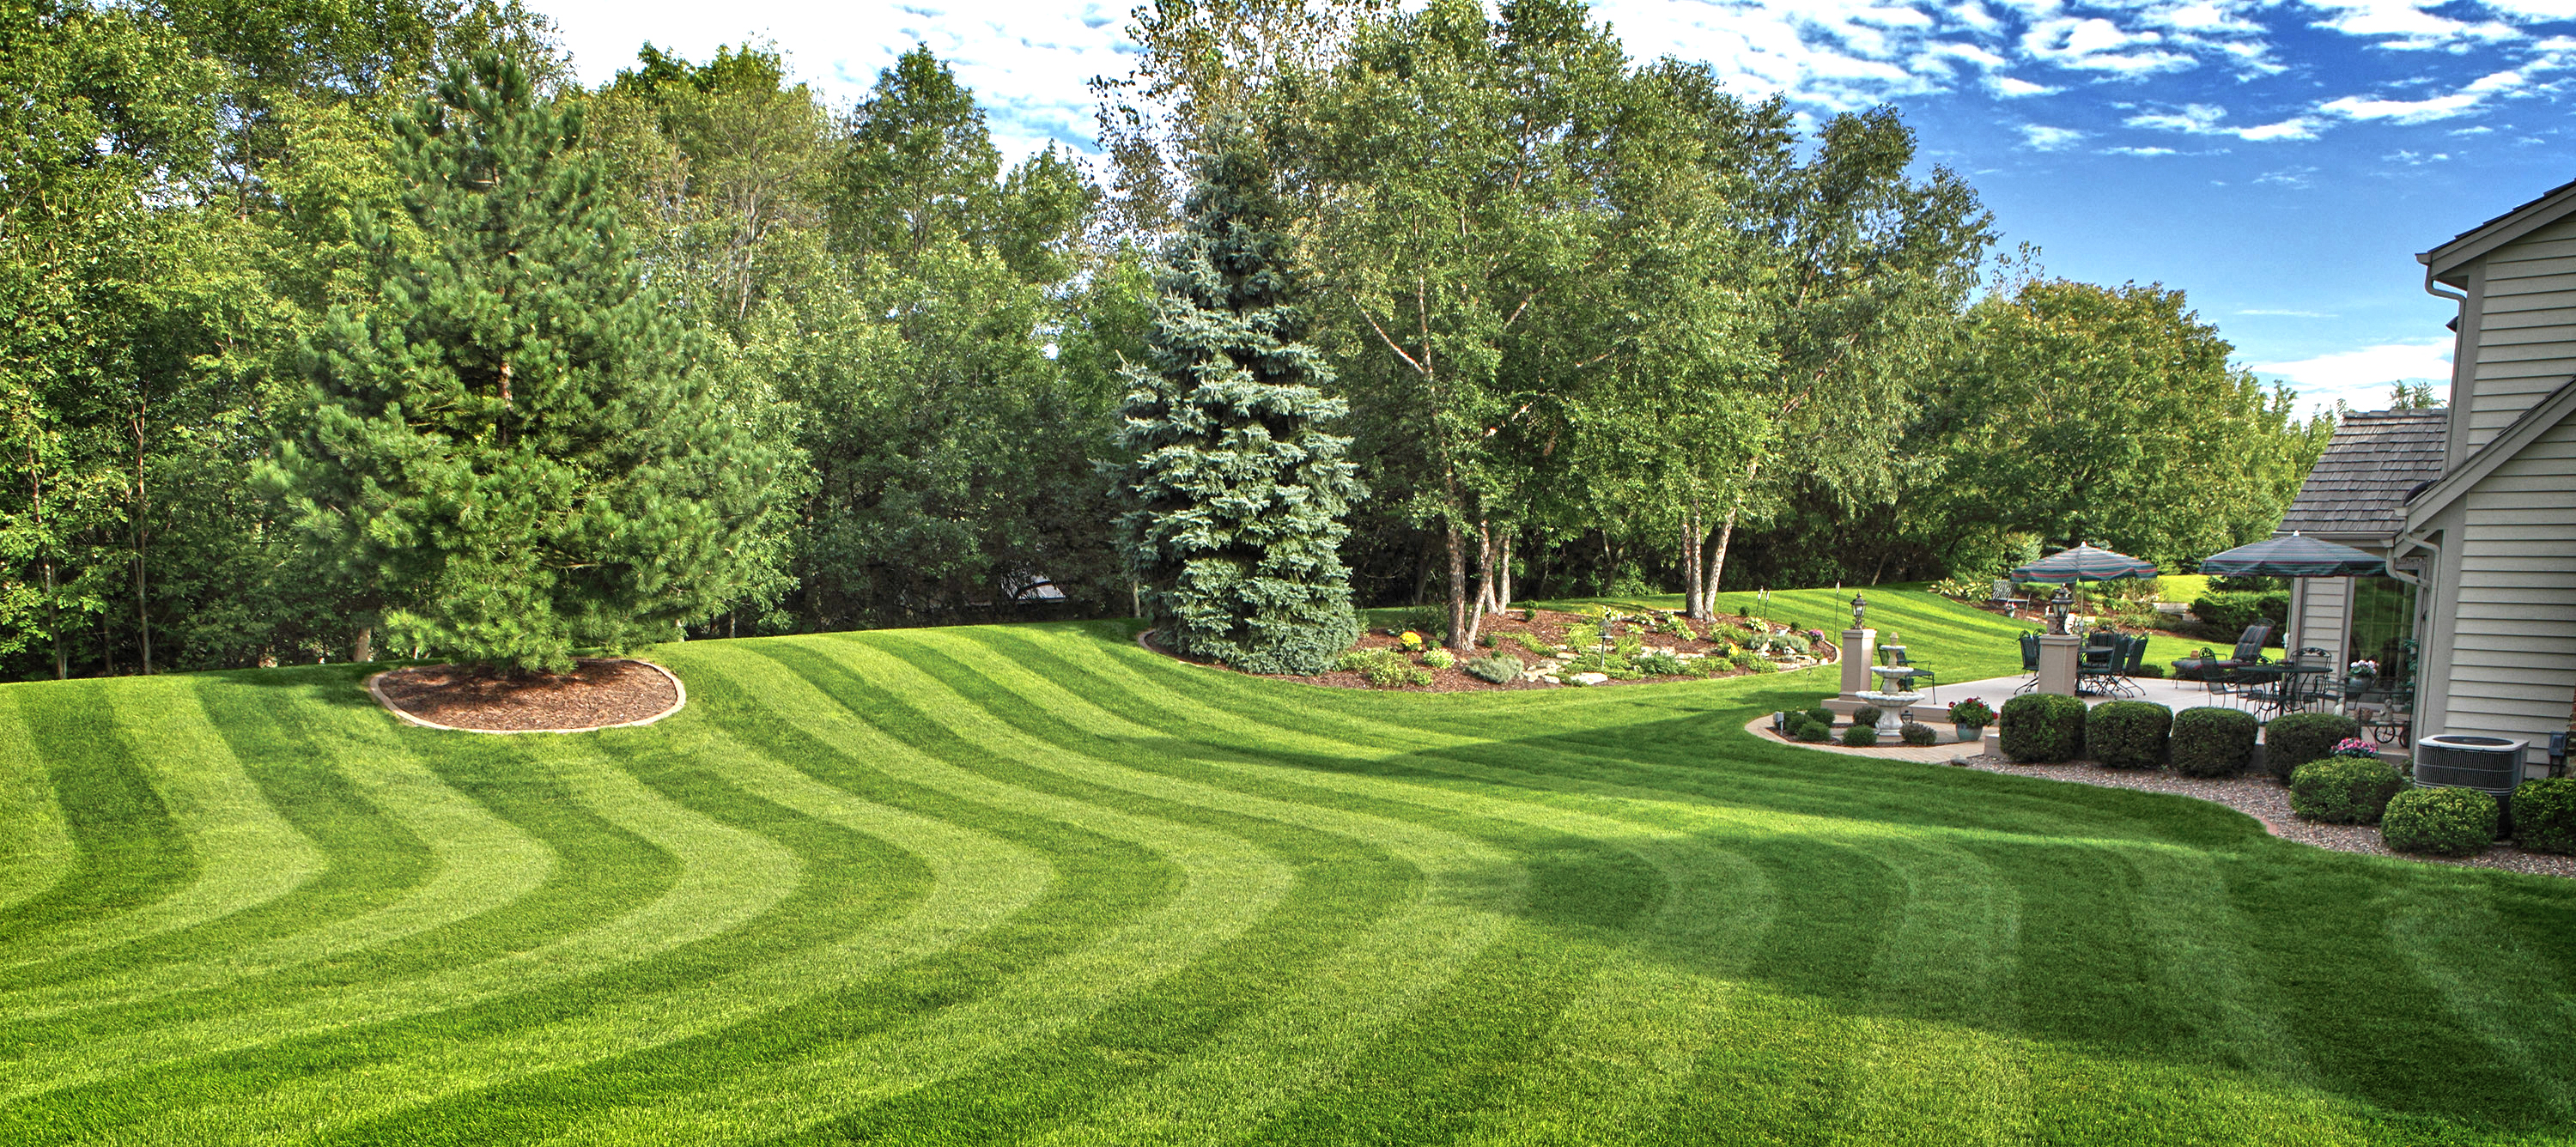 Lawn Care - 2 - Terra Lawn Care Specialists